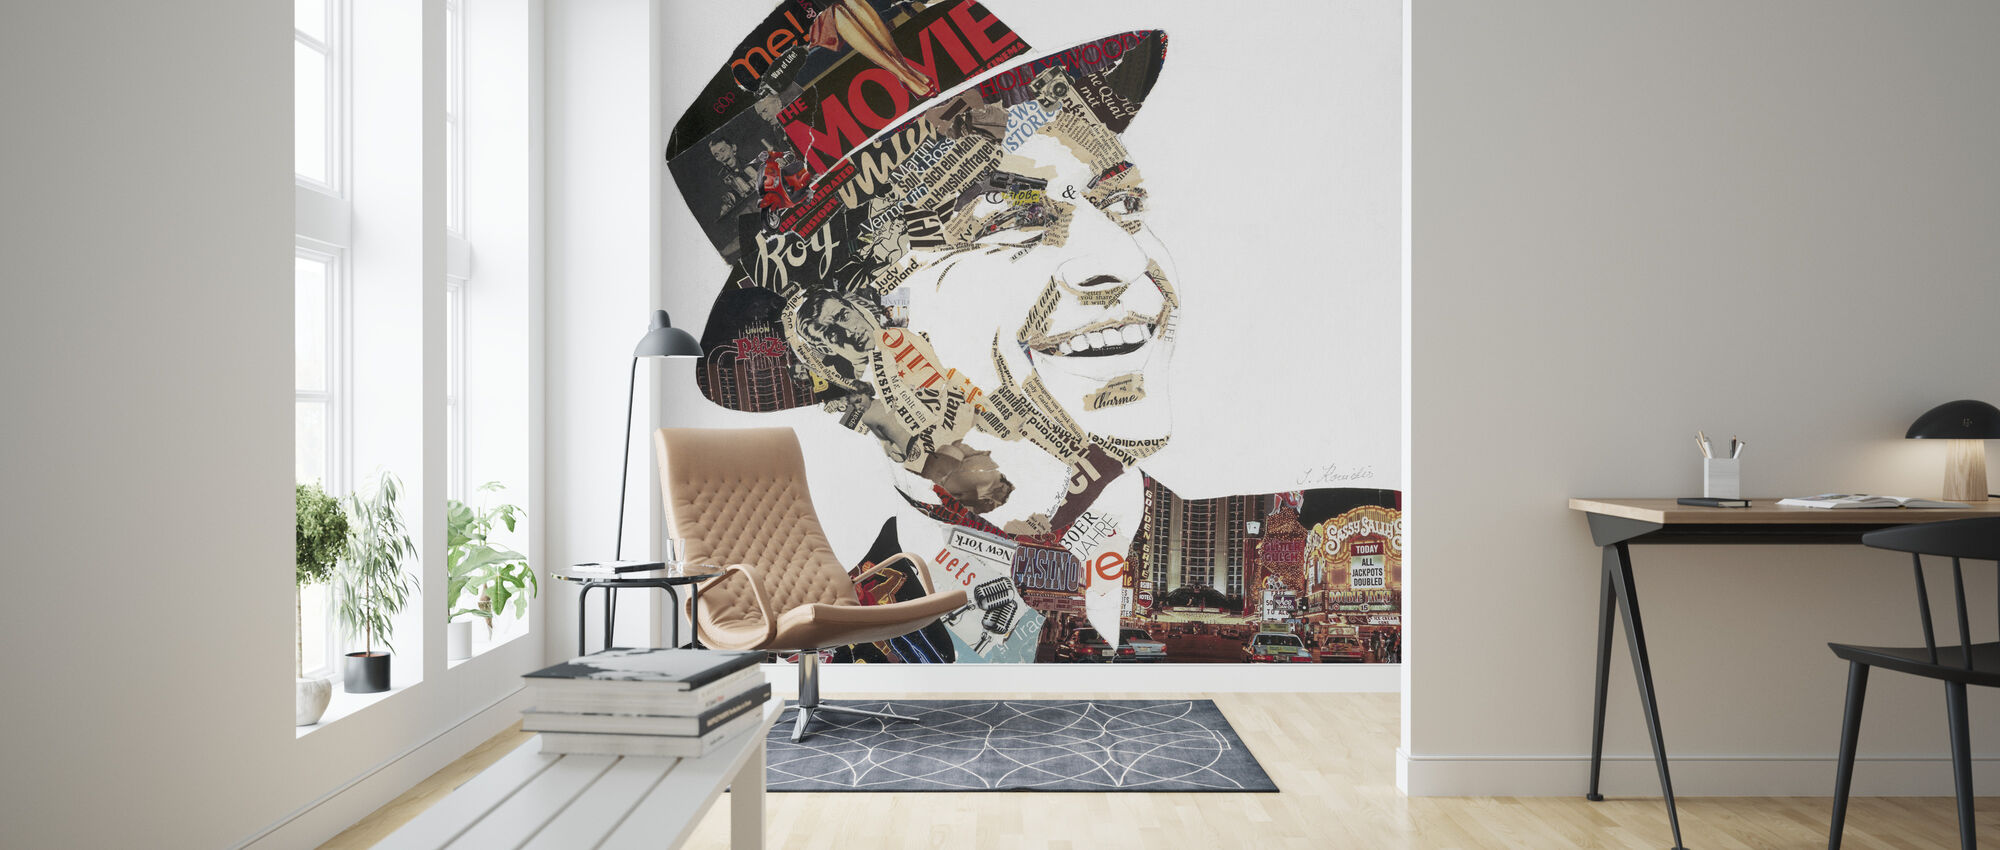 Franky - Wallpaper - Living Room